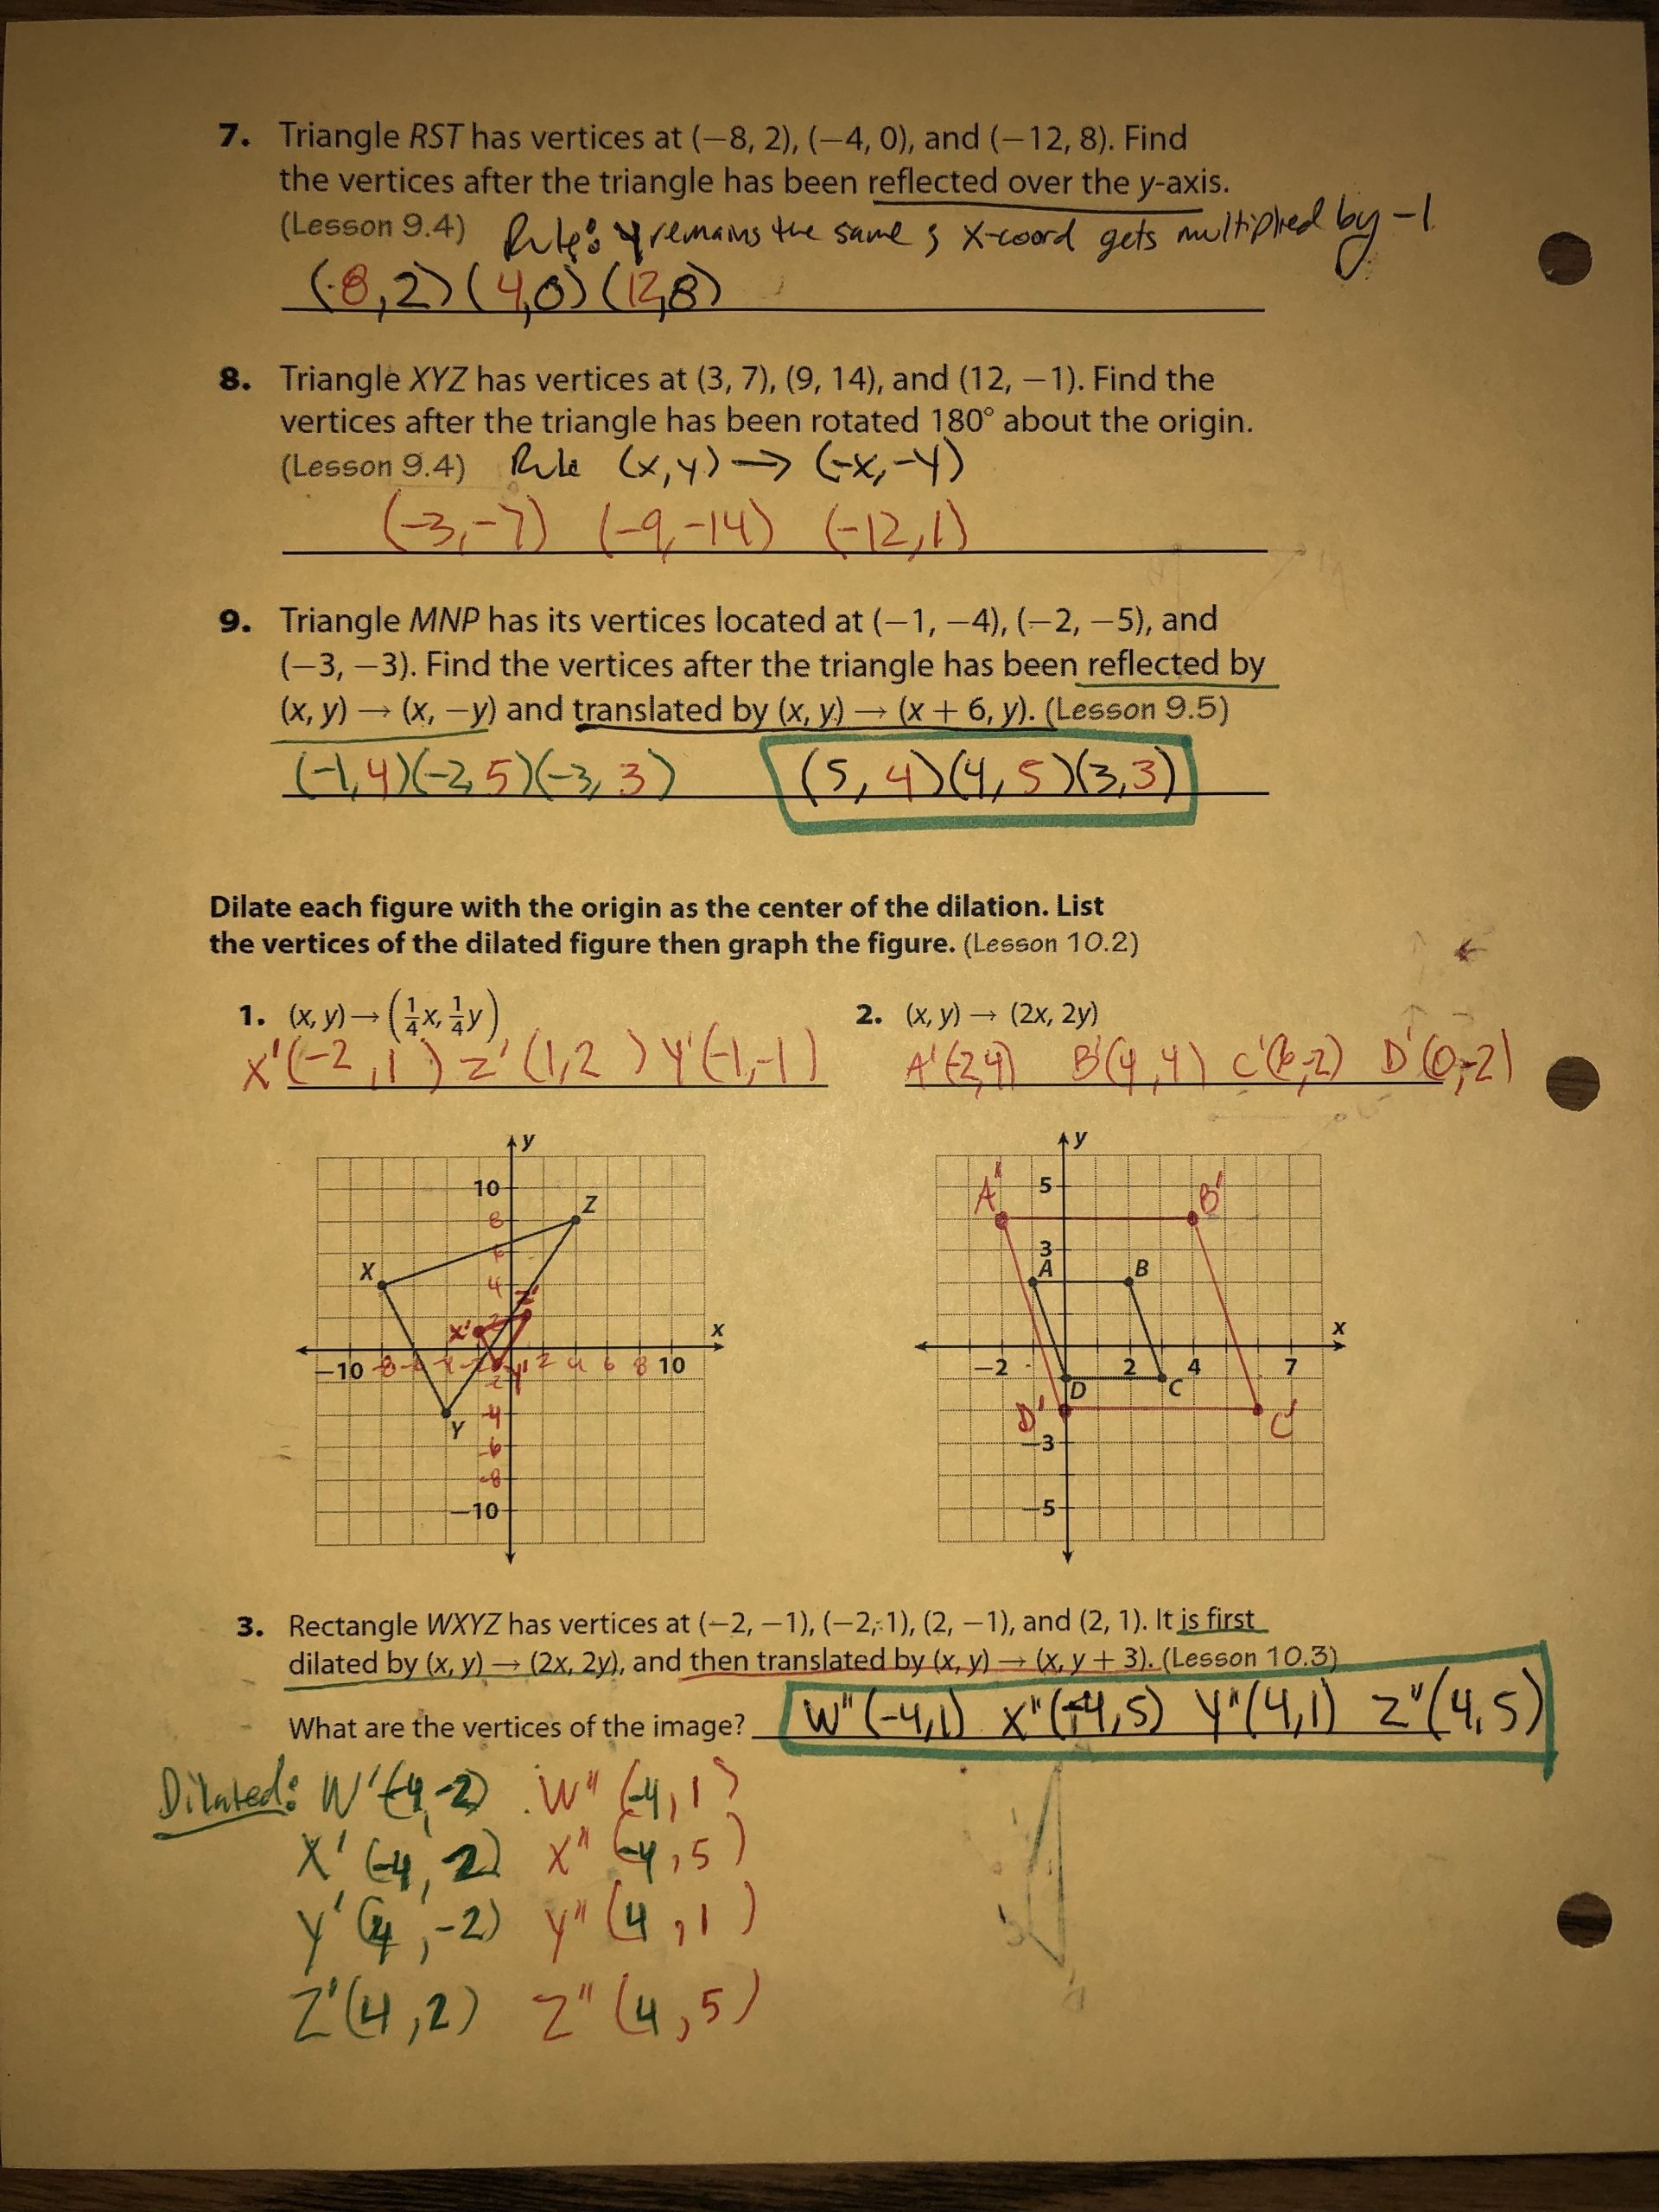 10 Formal Graphing Linear Equations Worksheet Answers